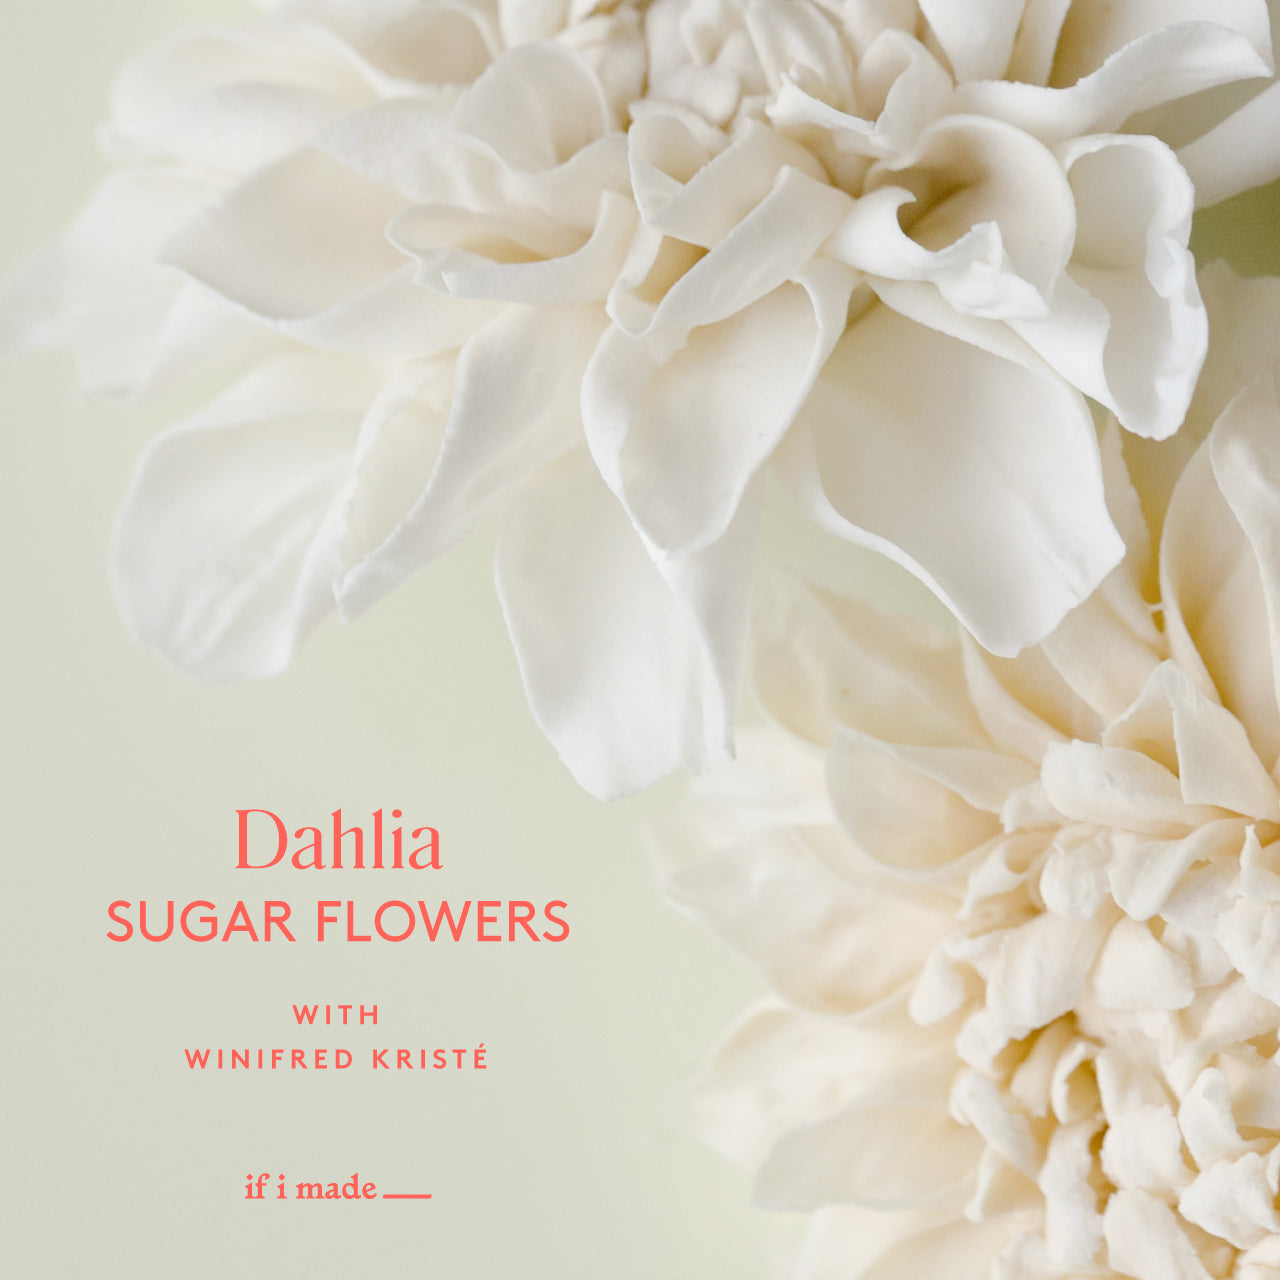 Sale Payment Plan: Dahlia with Winifred Kriste - 5 Payments of $99